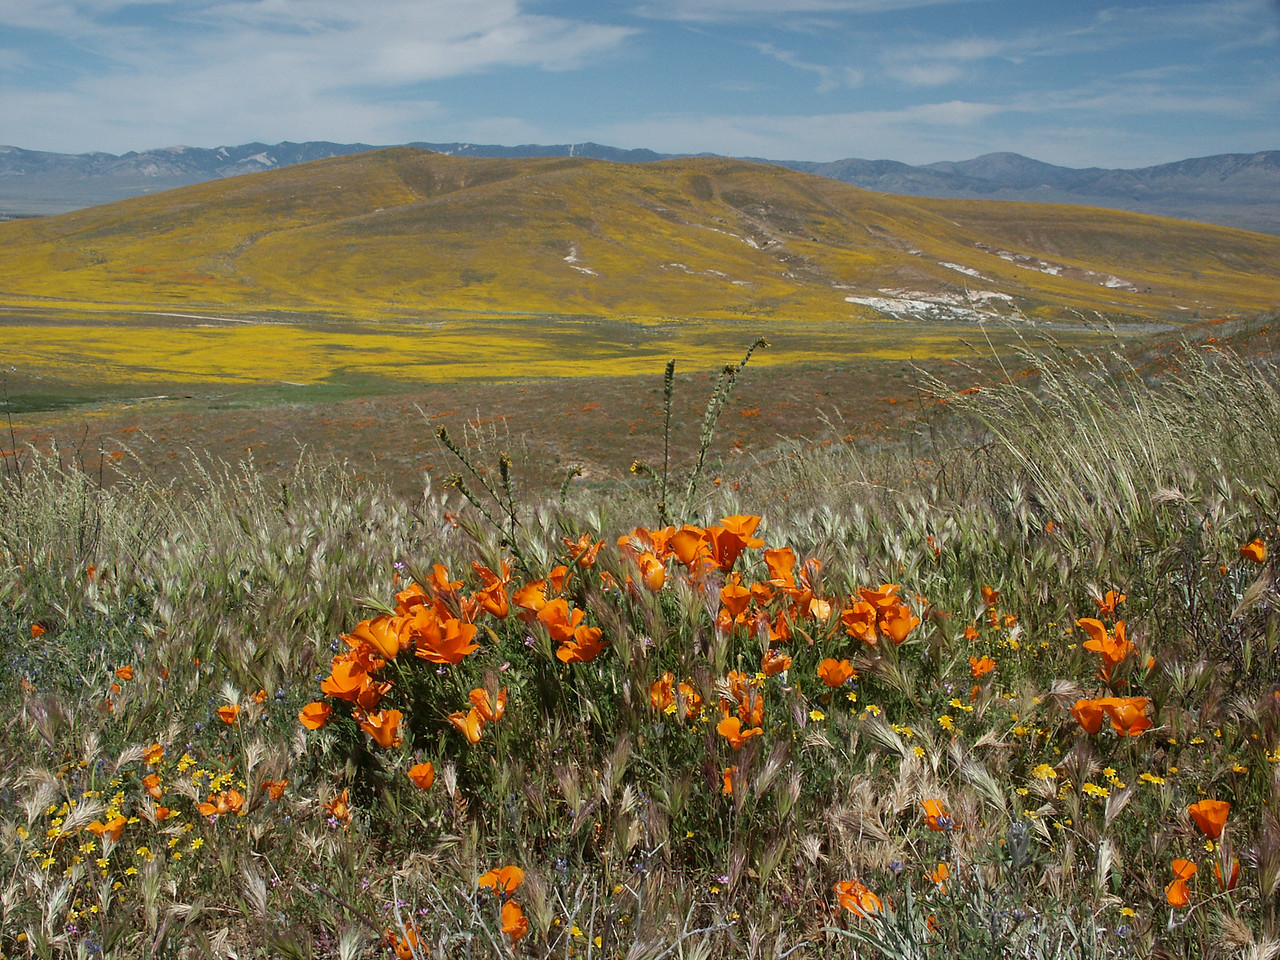 California Poppy was named the State flower in 1903.